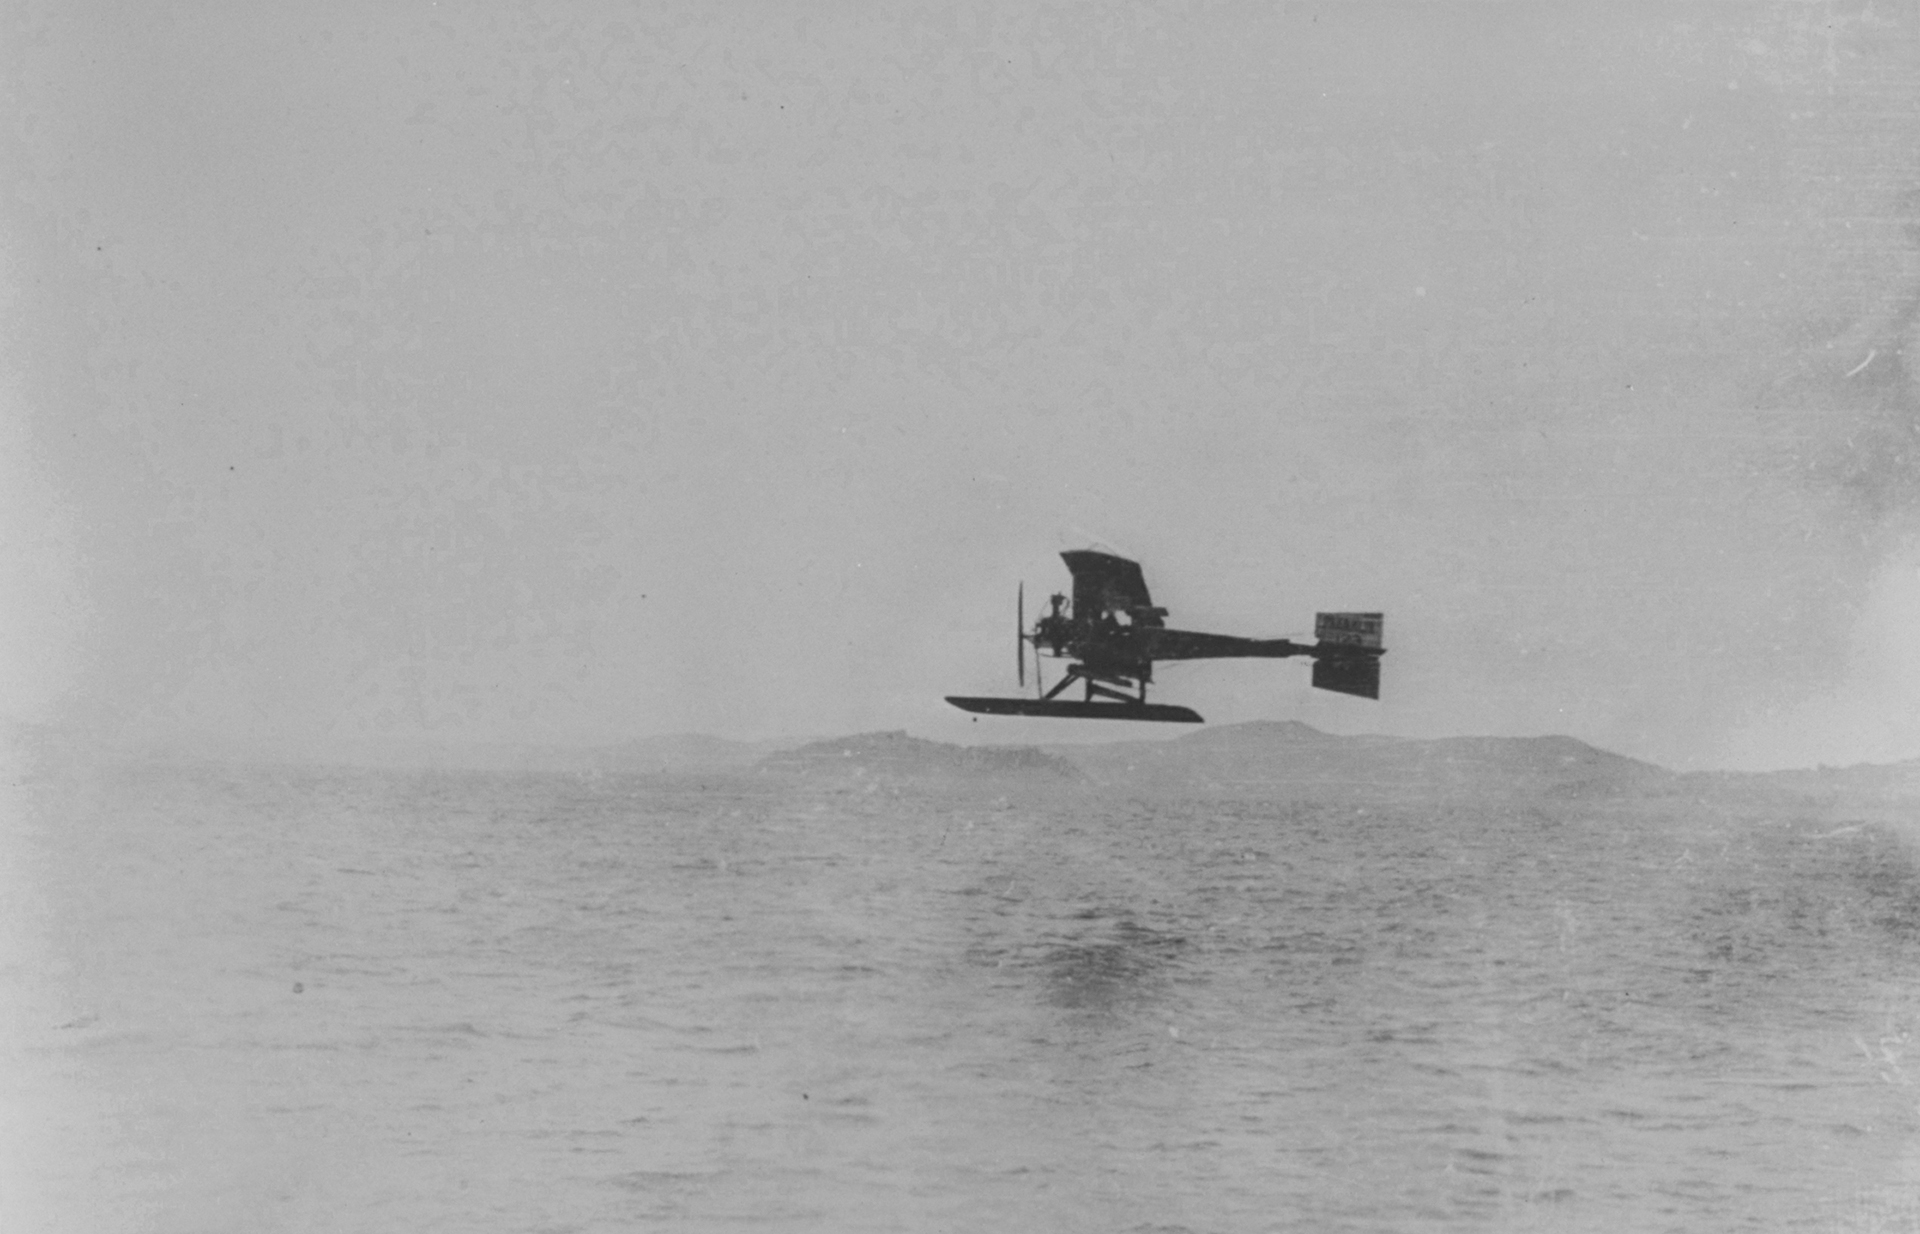 Model G in flight over San Francisco Bay